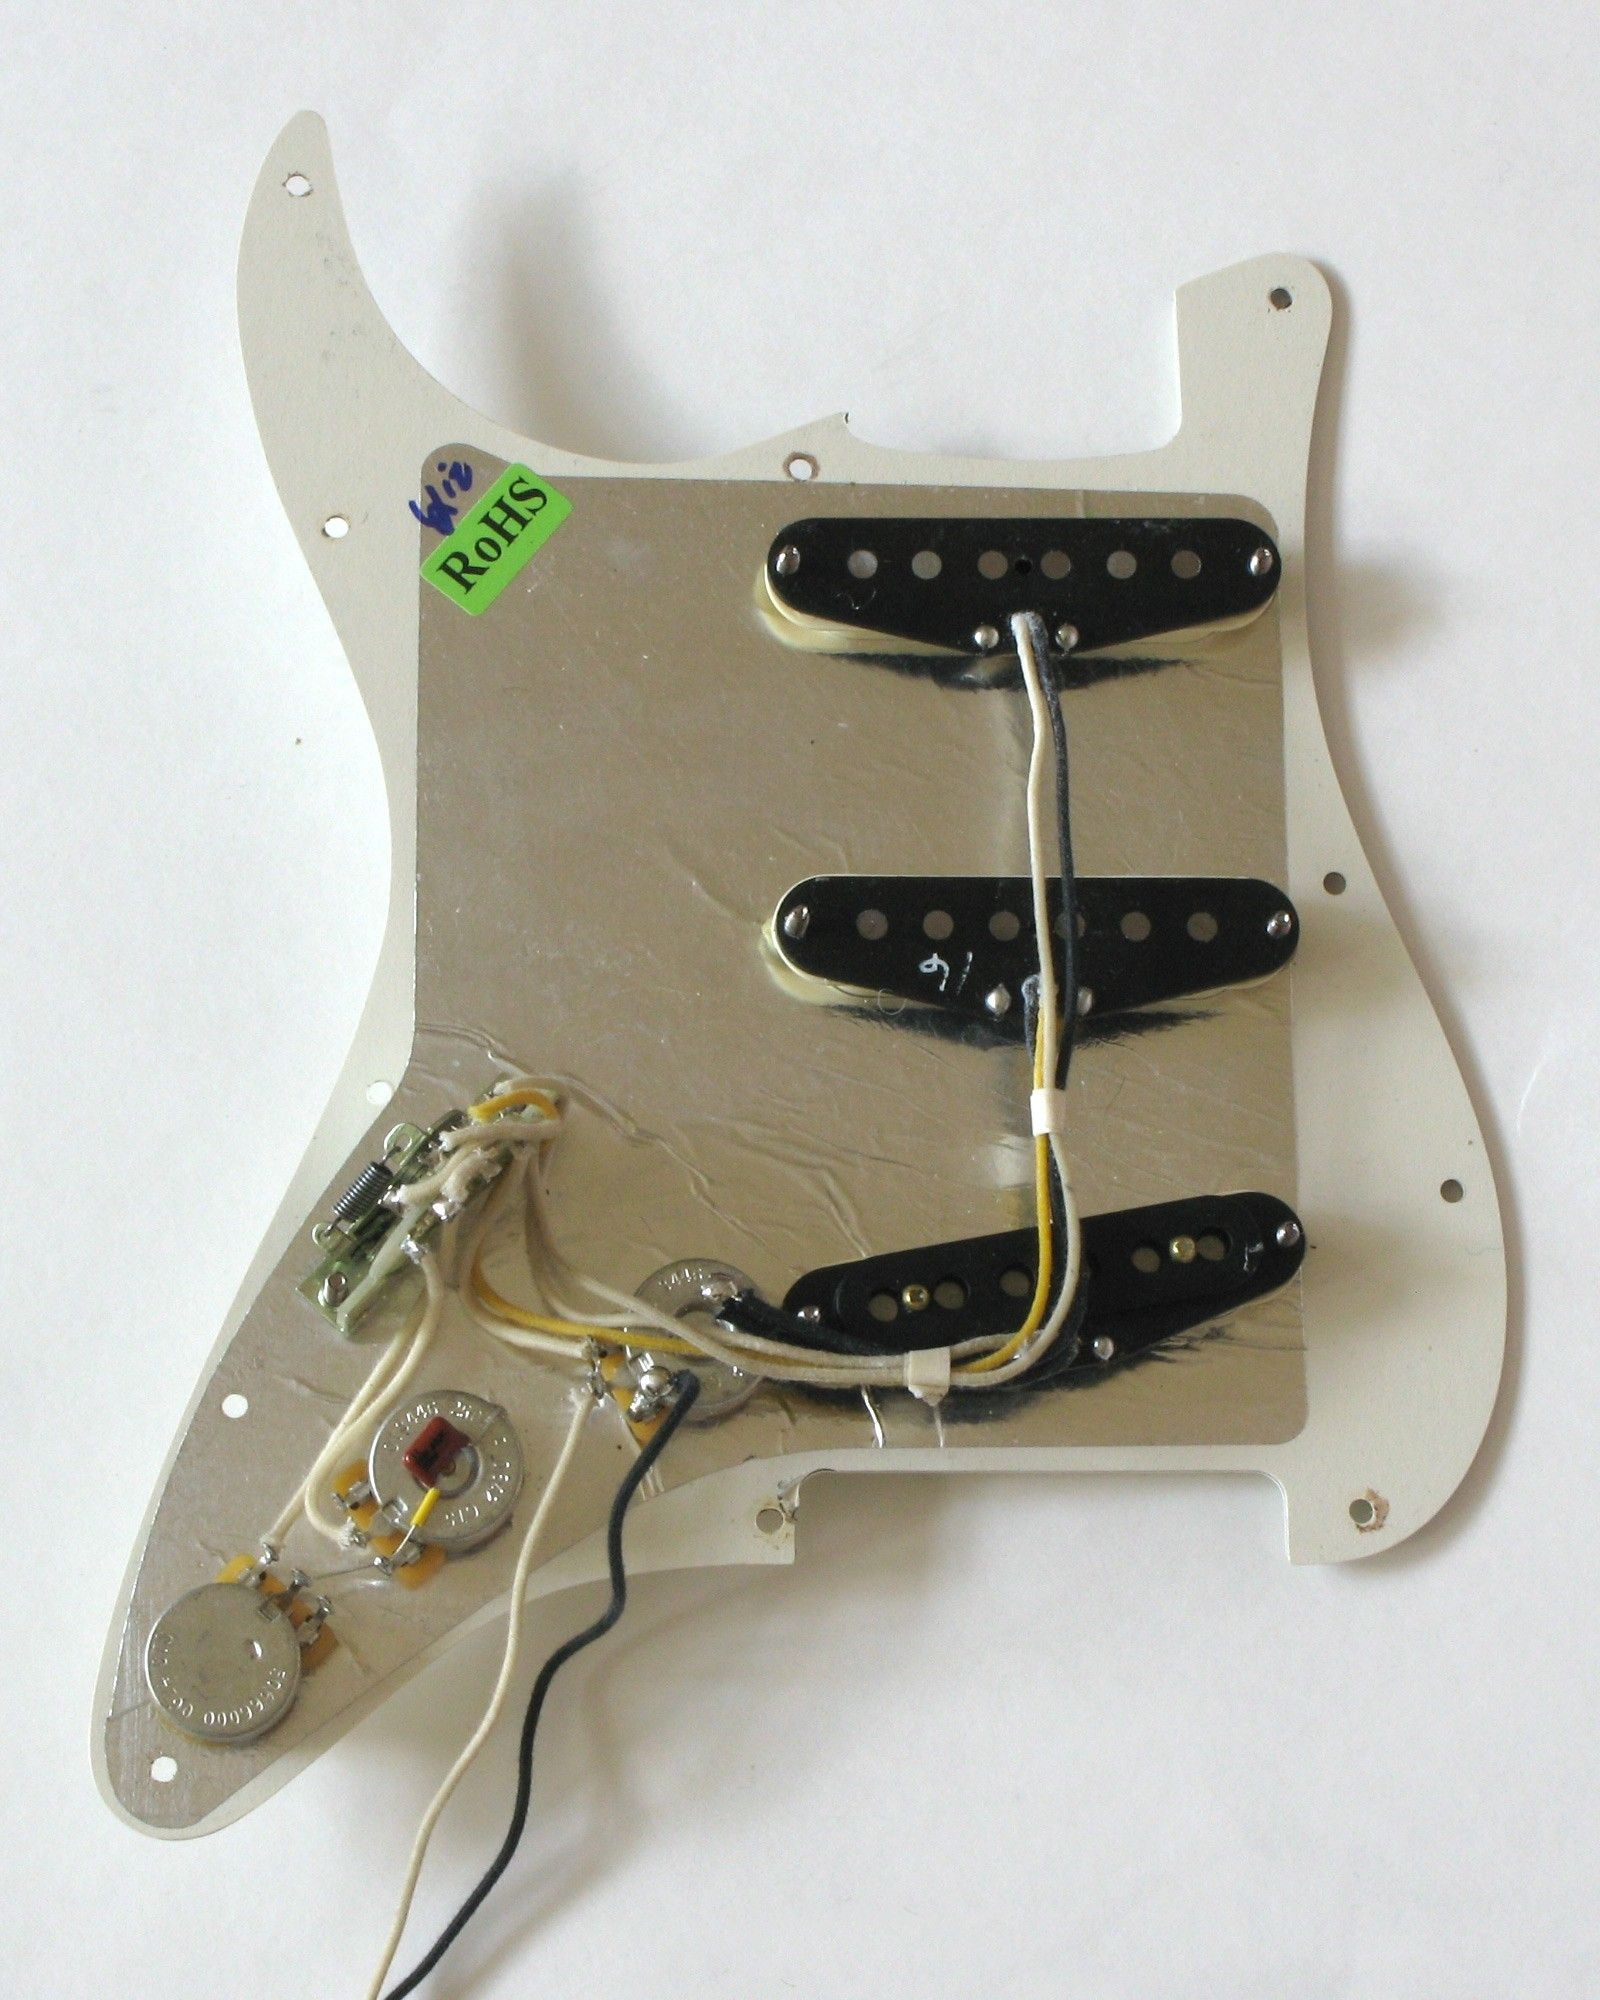 Fender S-1 Switching Diagram Best Fender Strat Wiring Diagram New Diagrams with Of Fender S-1 Switching Diagram